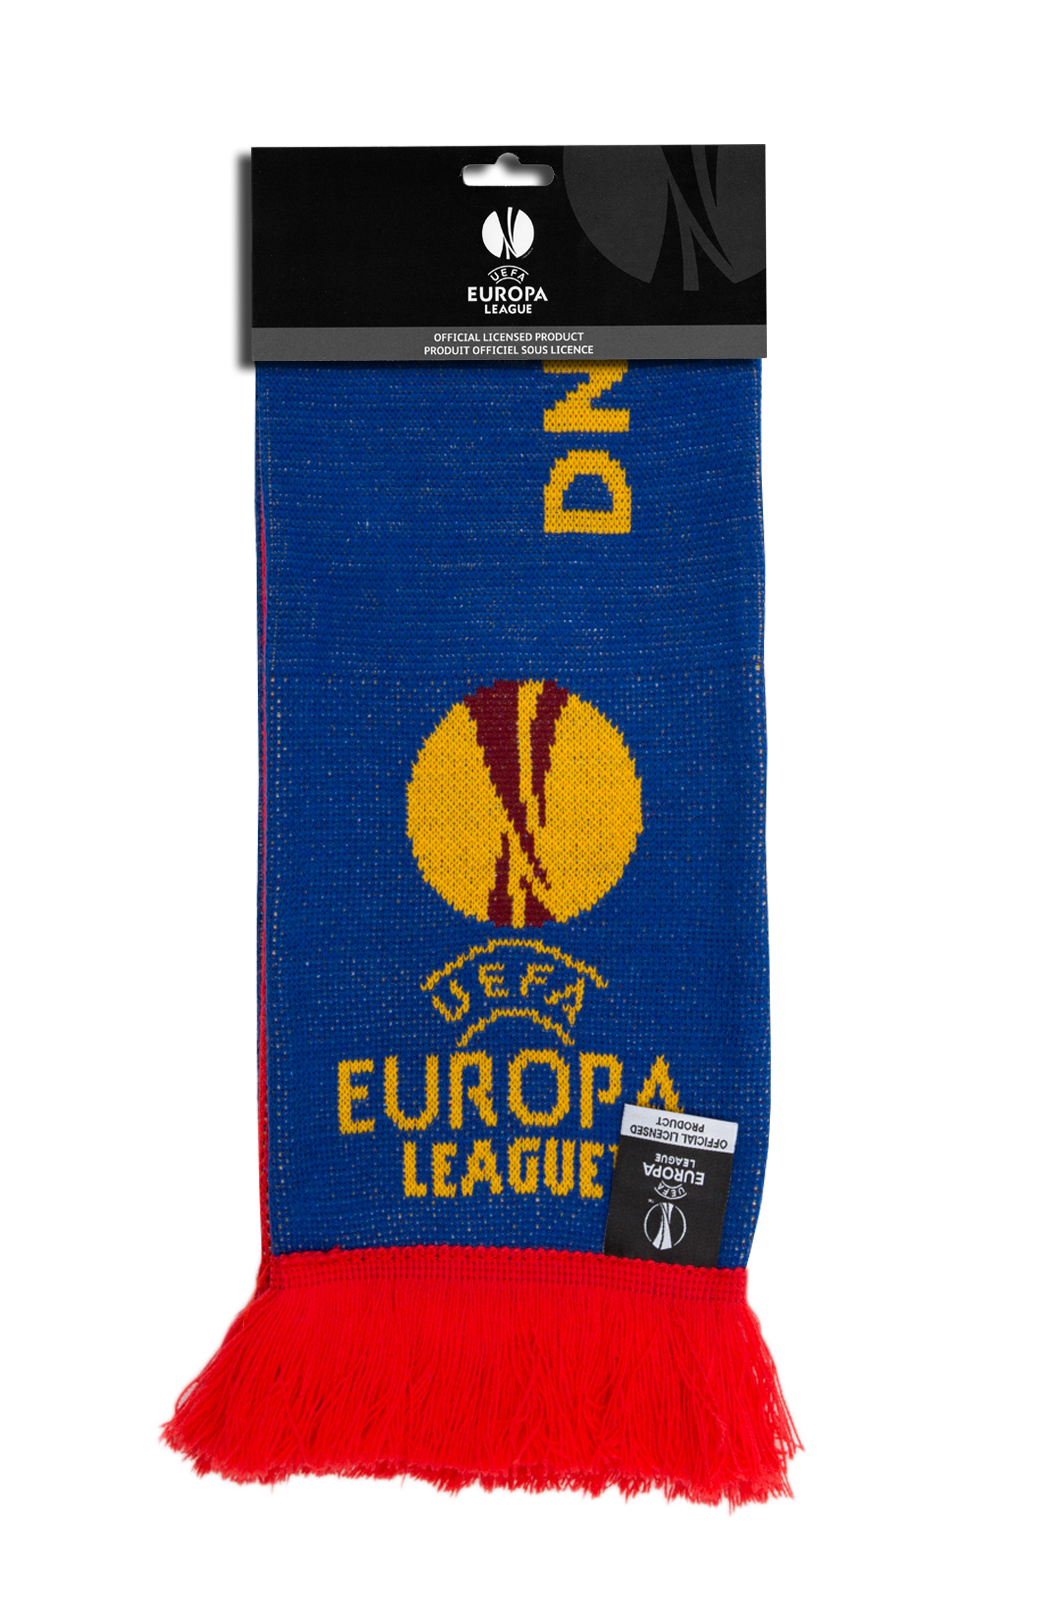 dnipro-dnipropetrovsk-sevilla-fc-UEFA-Europa-League-FINAL-3